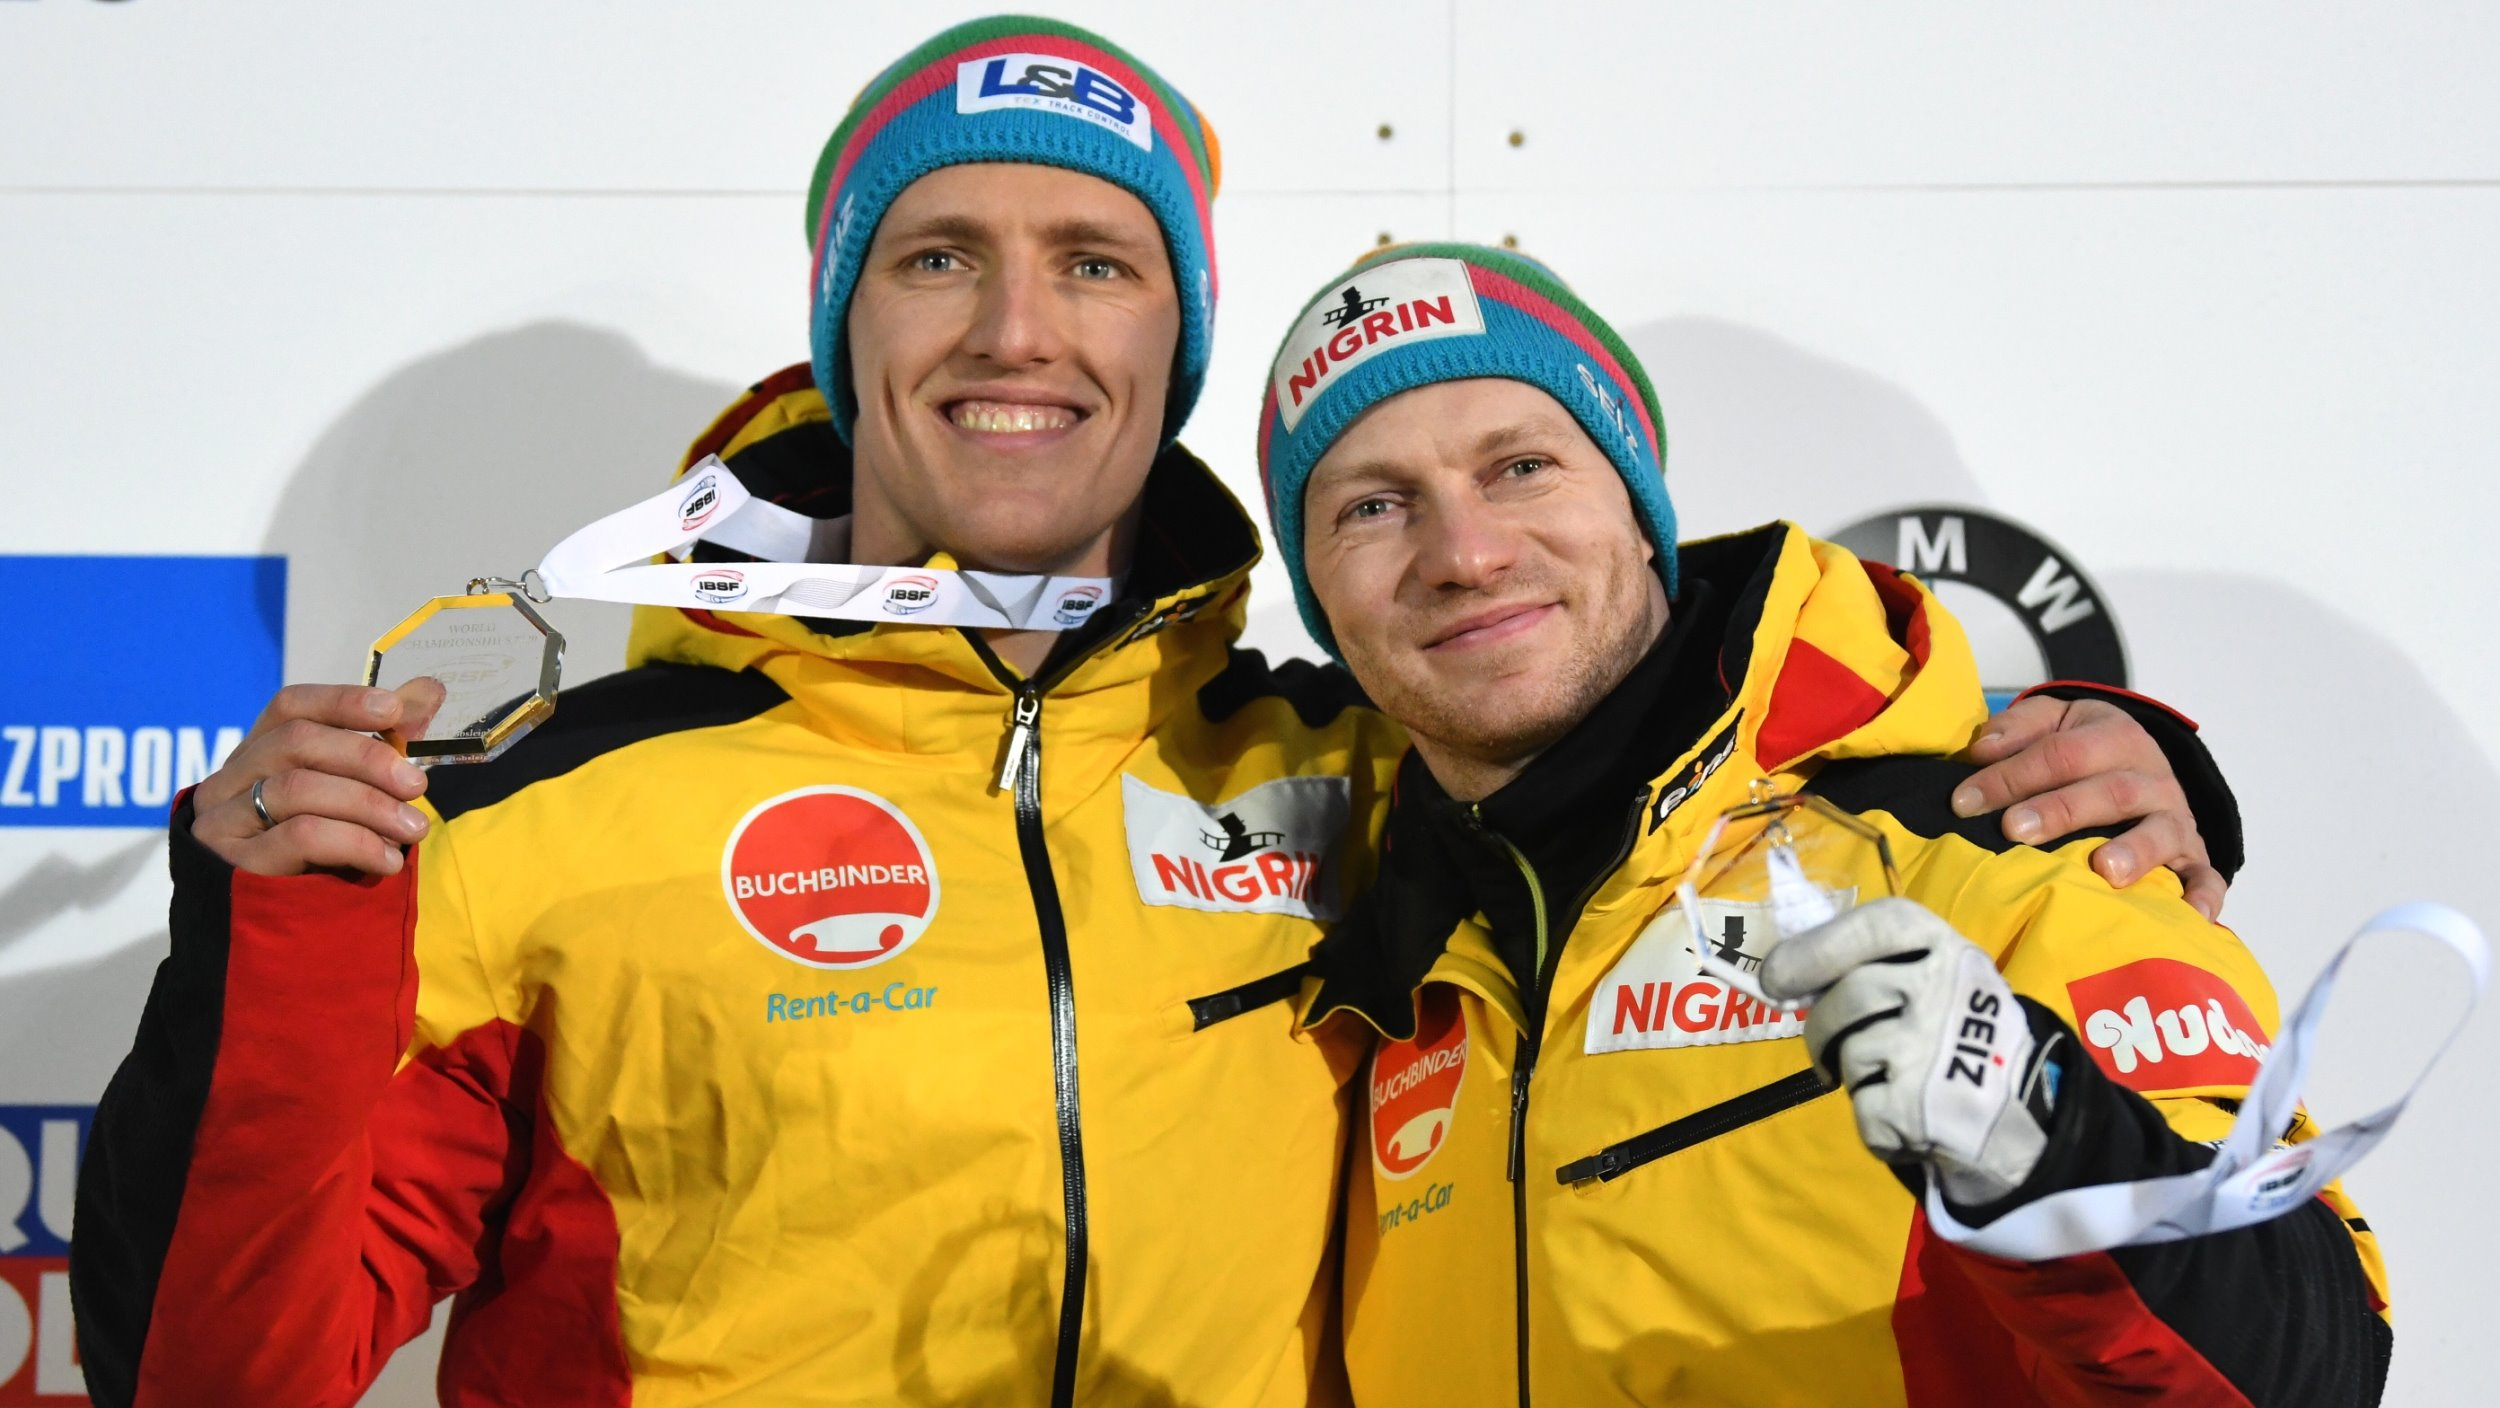 2 man Bob BMW IBSF World Championships 2020 Altenberg Friedrich medals